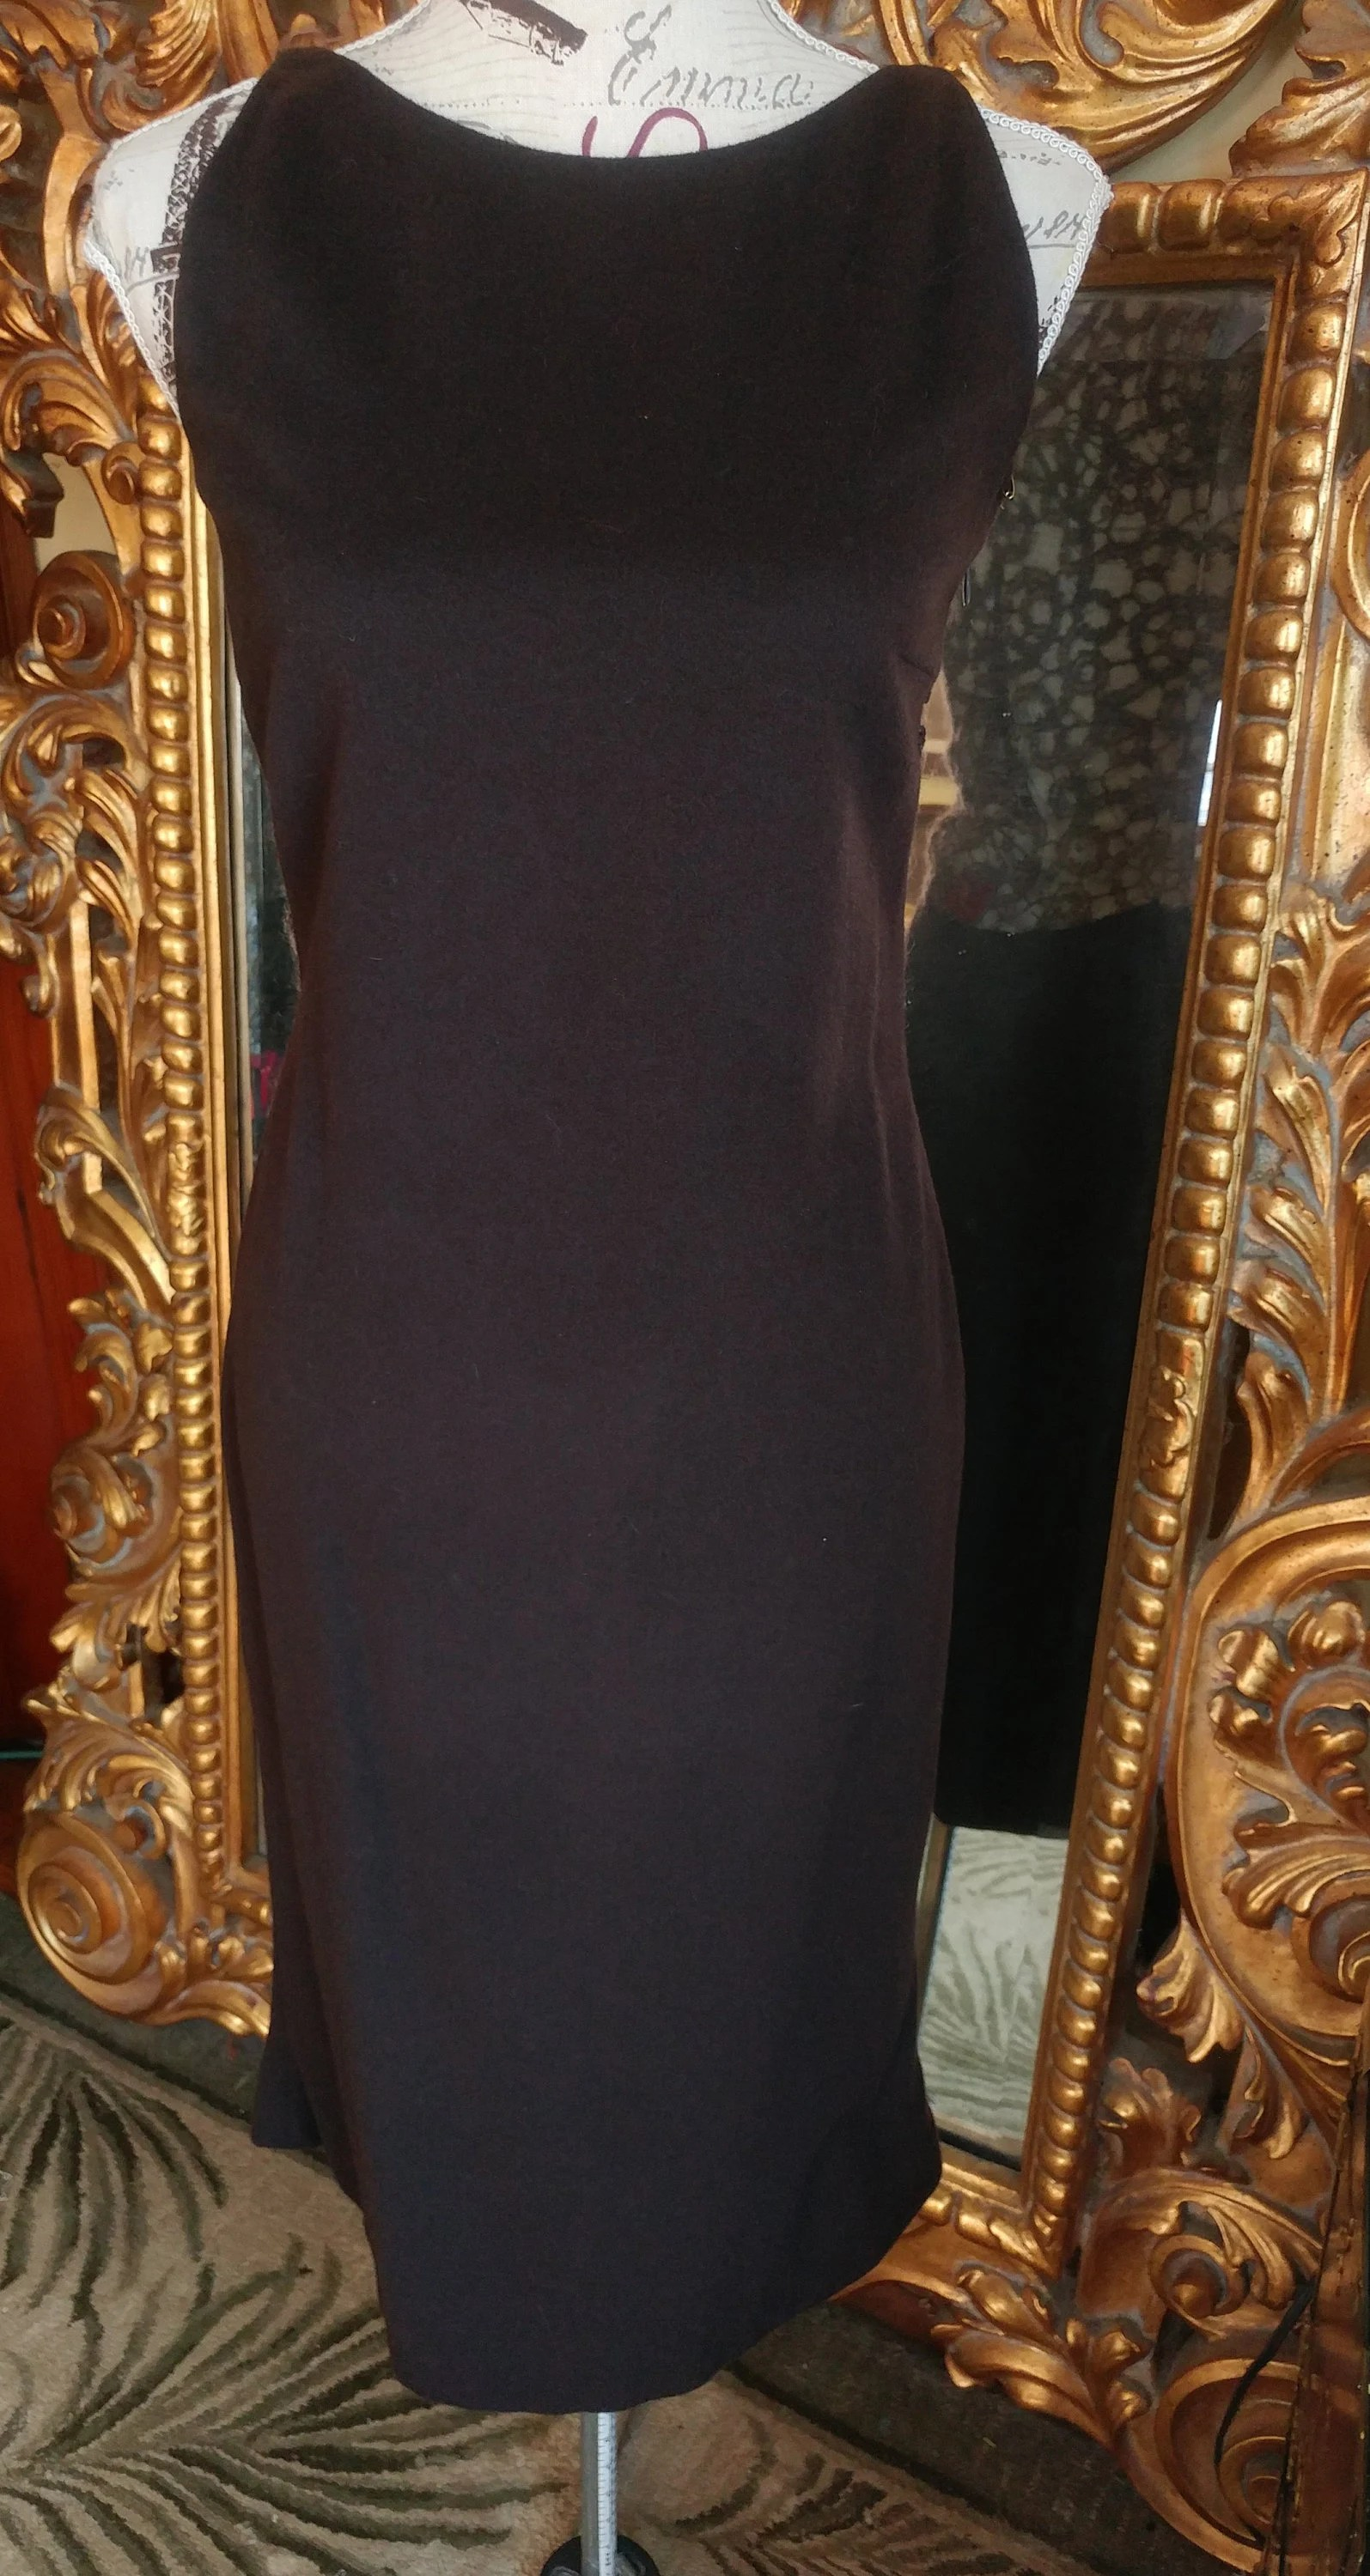 Ecole De La Chambre Syndicale Paris Designer Thomas Steinbruck Chocolate Brown Cashmere Sheer Back Dress